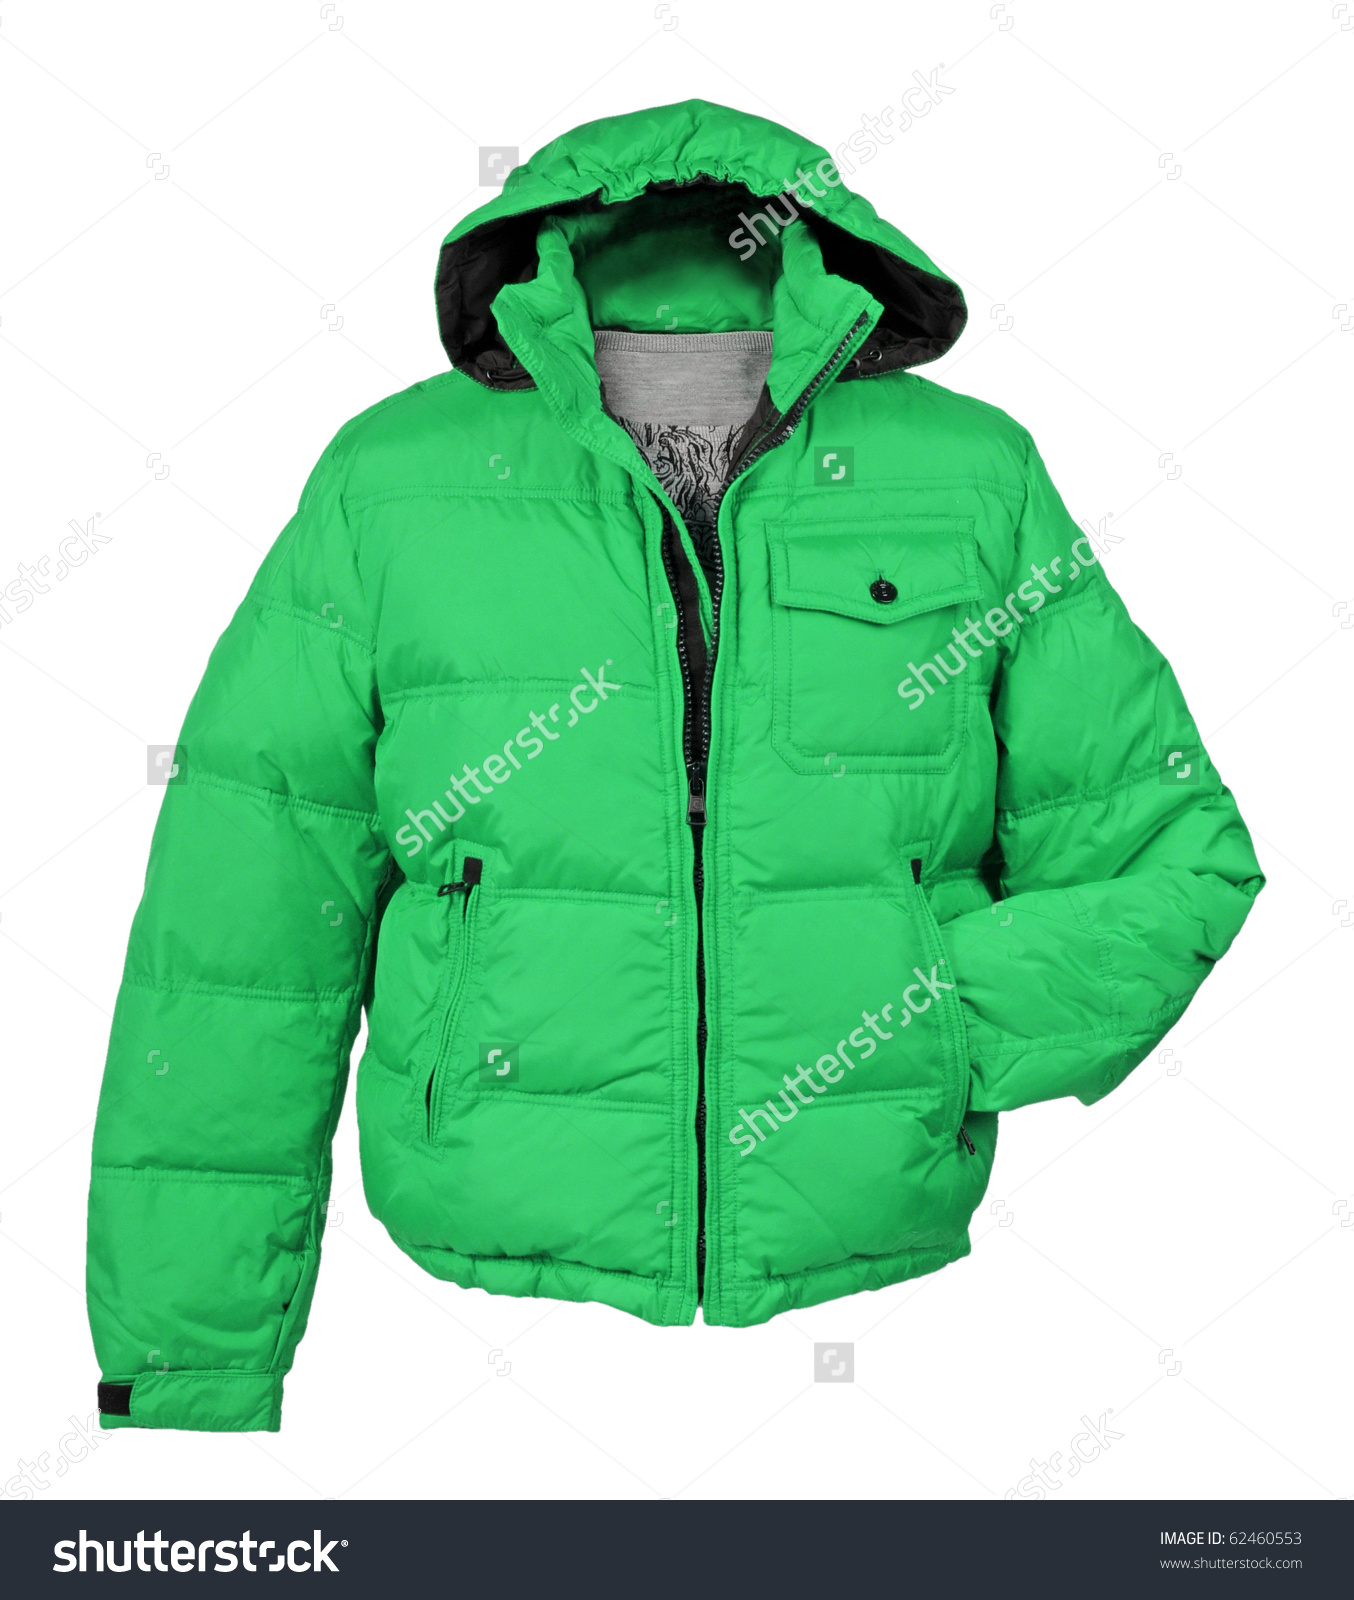 Green Jacket Stock Photo 62460553.